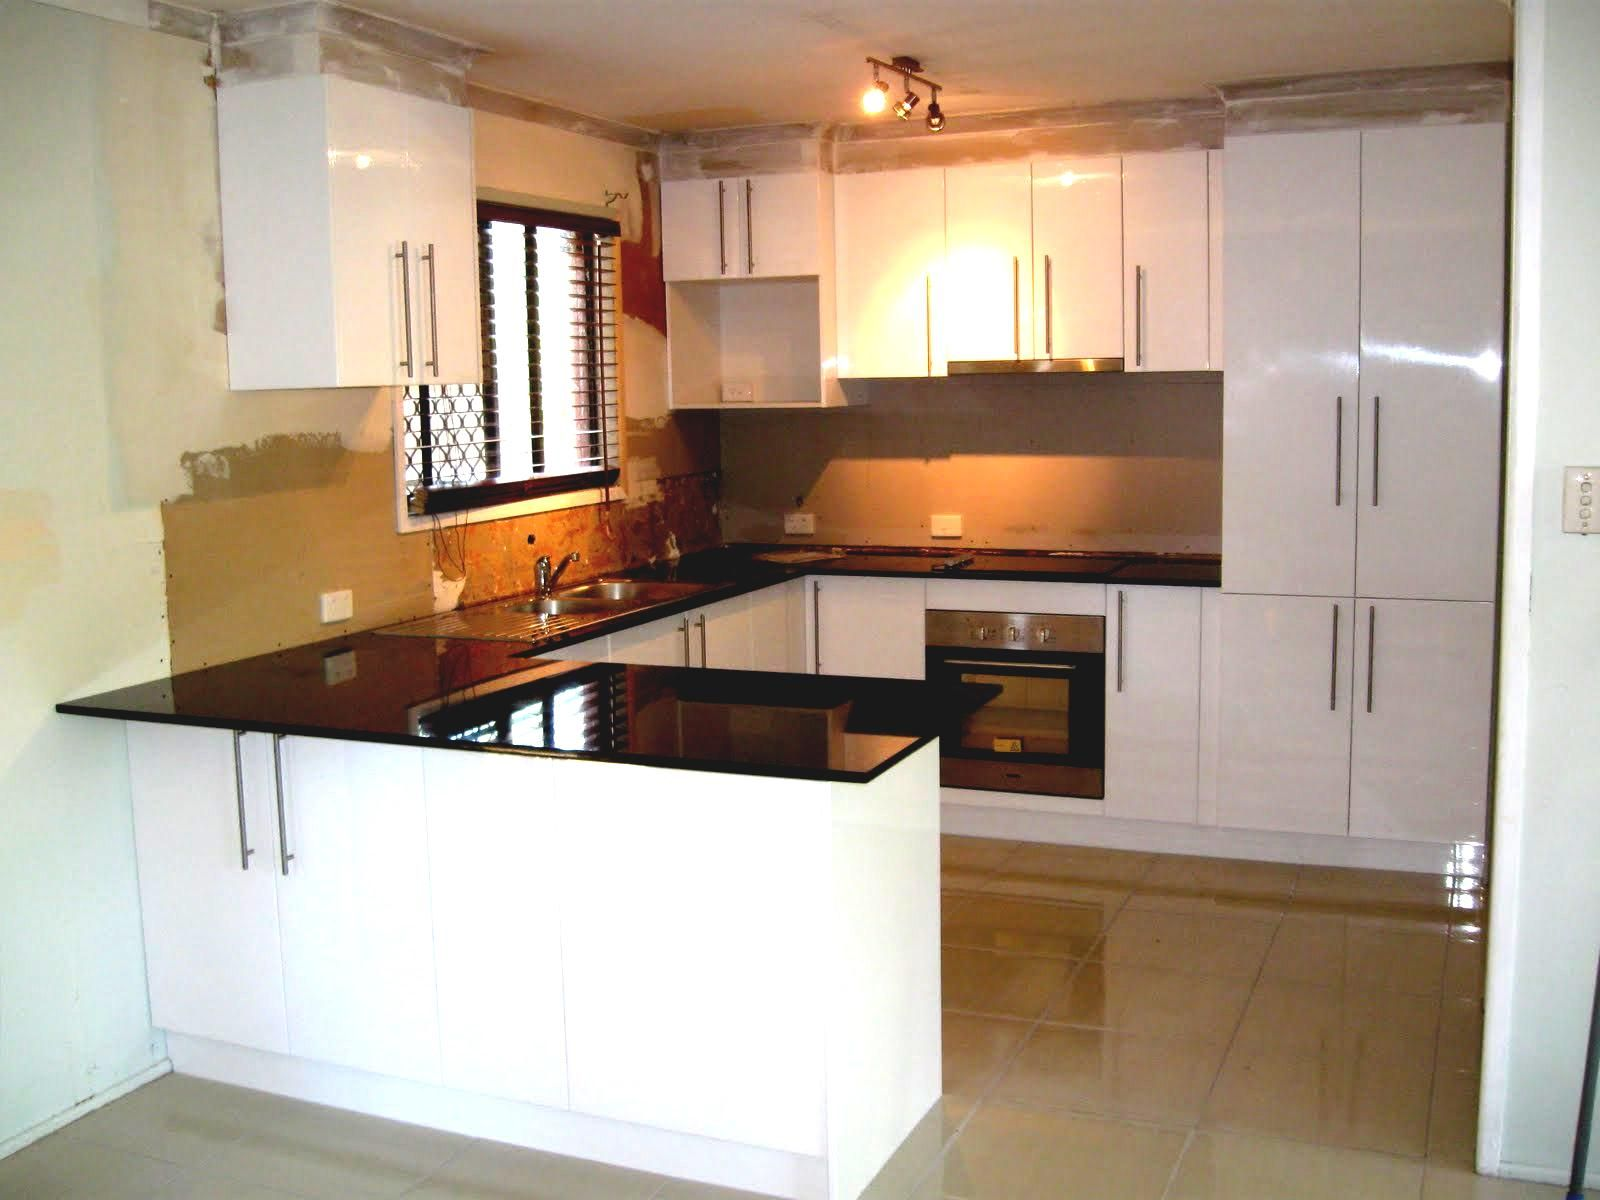 best u shaped kitchen design decoration ideas with images small u shaped kitchens kitchen on u kitchen with island id=41810